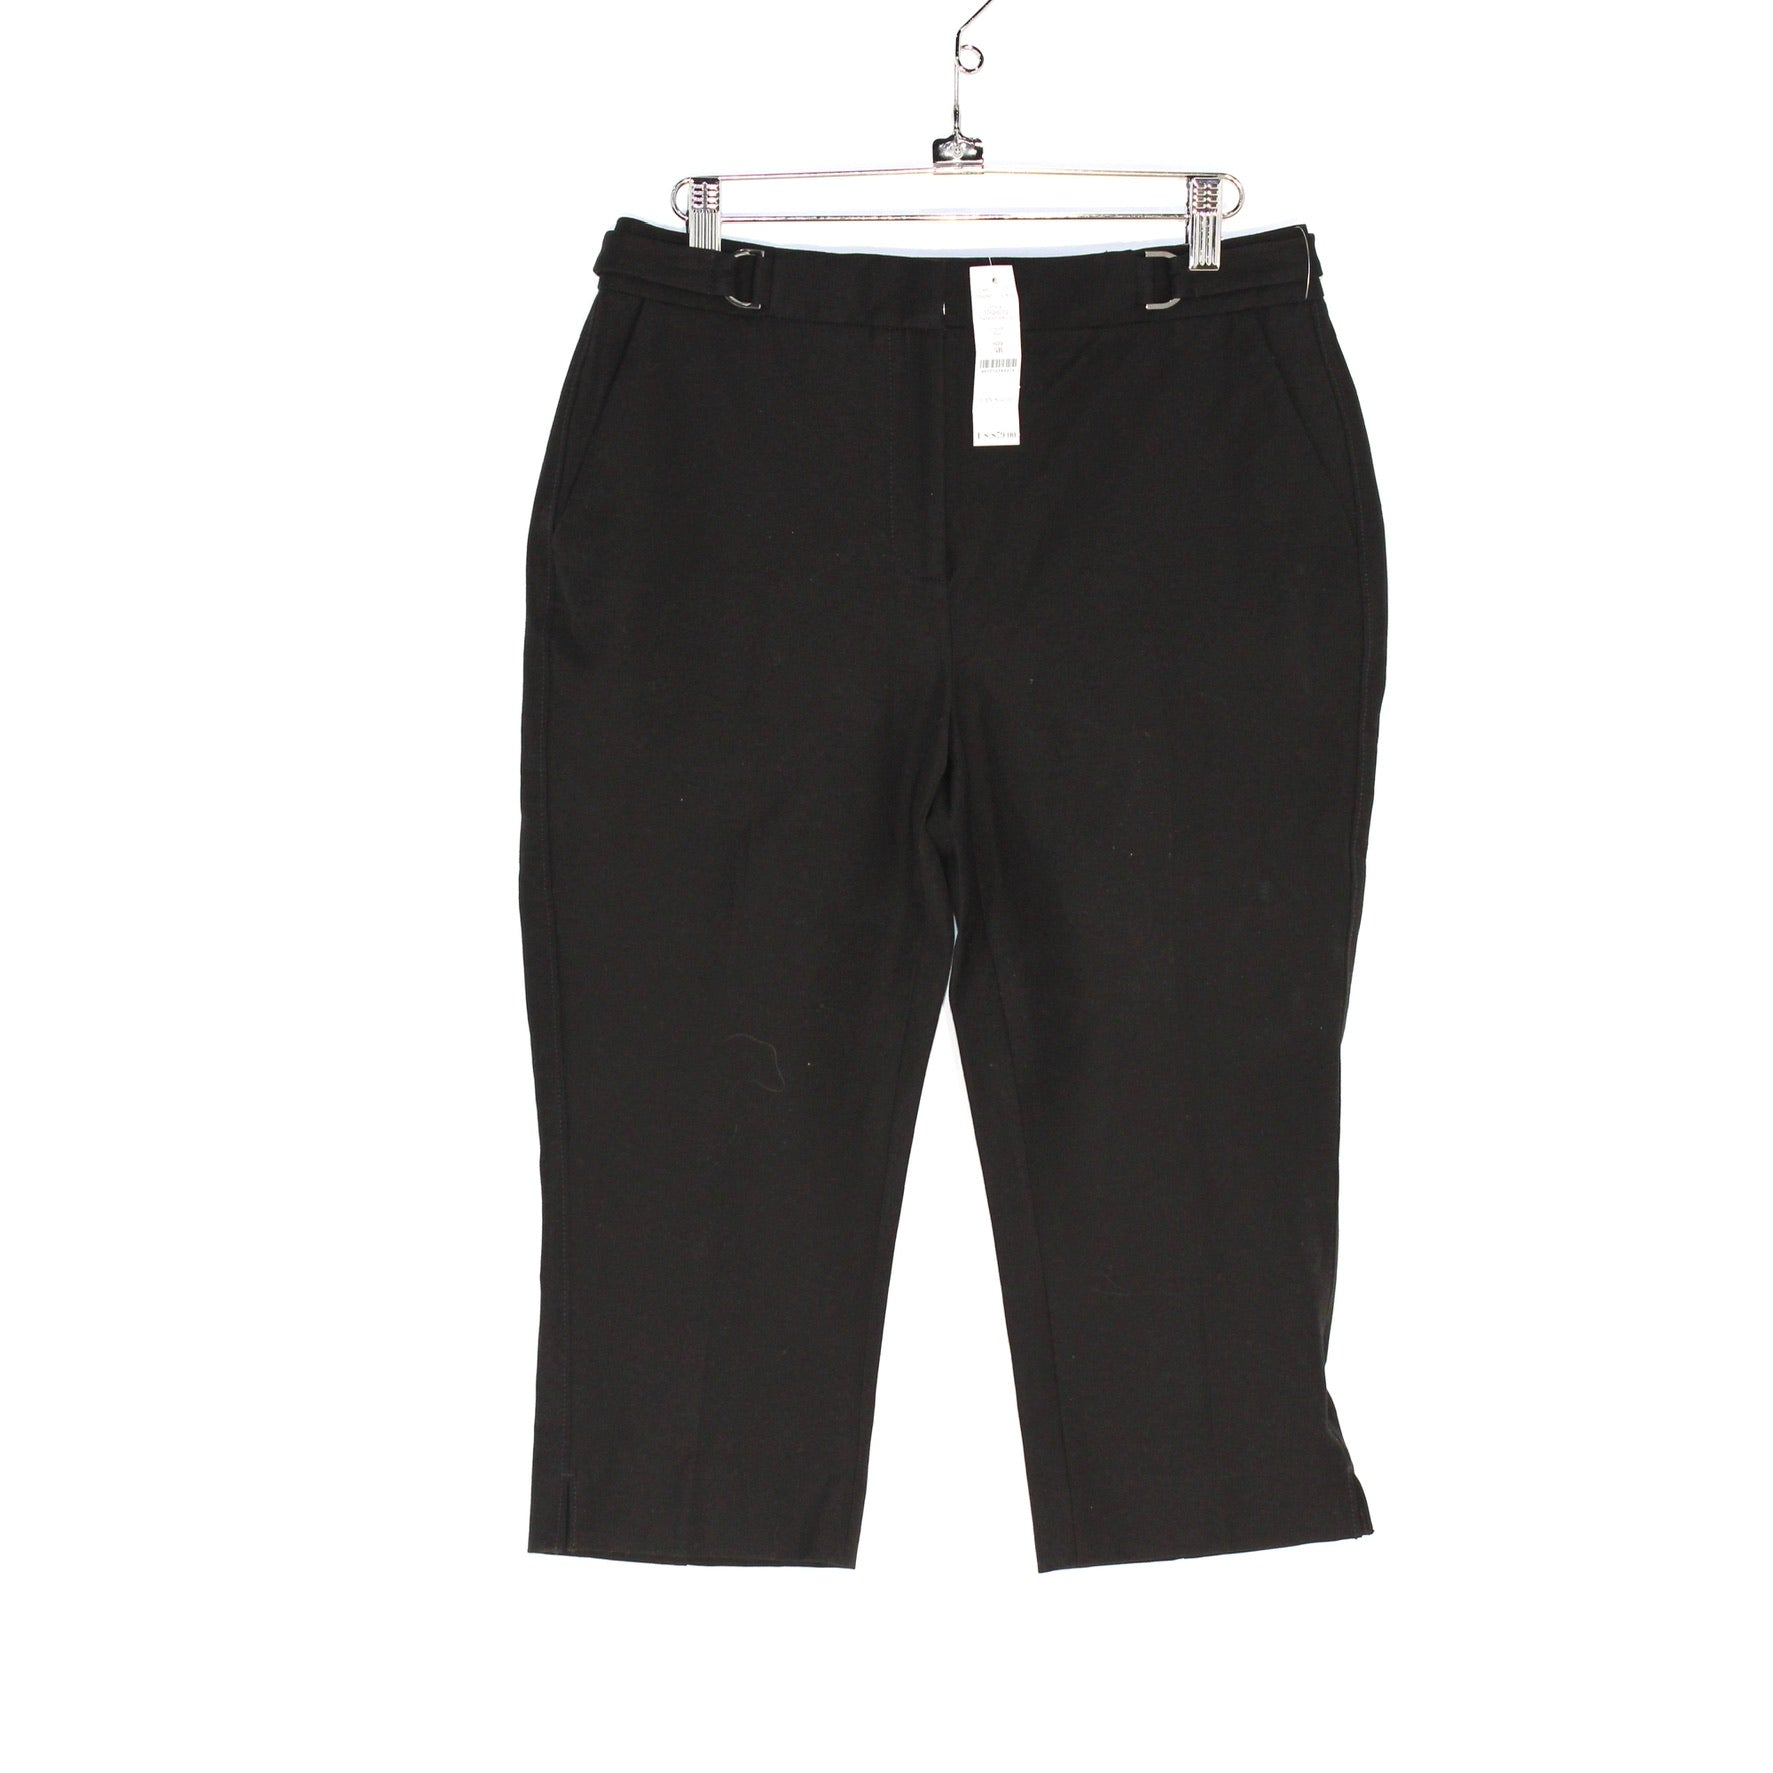 Primary Photo - BRAND: WHITE HOUSE BLACK MARKET <BR>STYLE: CAPRIS <BR>COLOR: BLACK <BR>SIZE: 4 <BR>SKU: 262-26211-138043<BR>STRAIGHT CROP